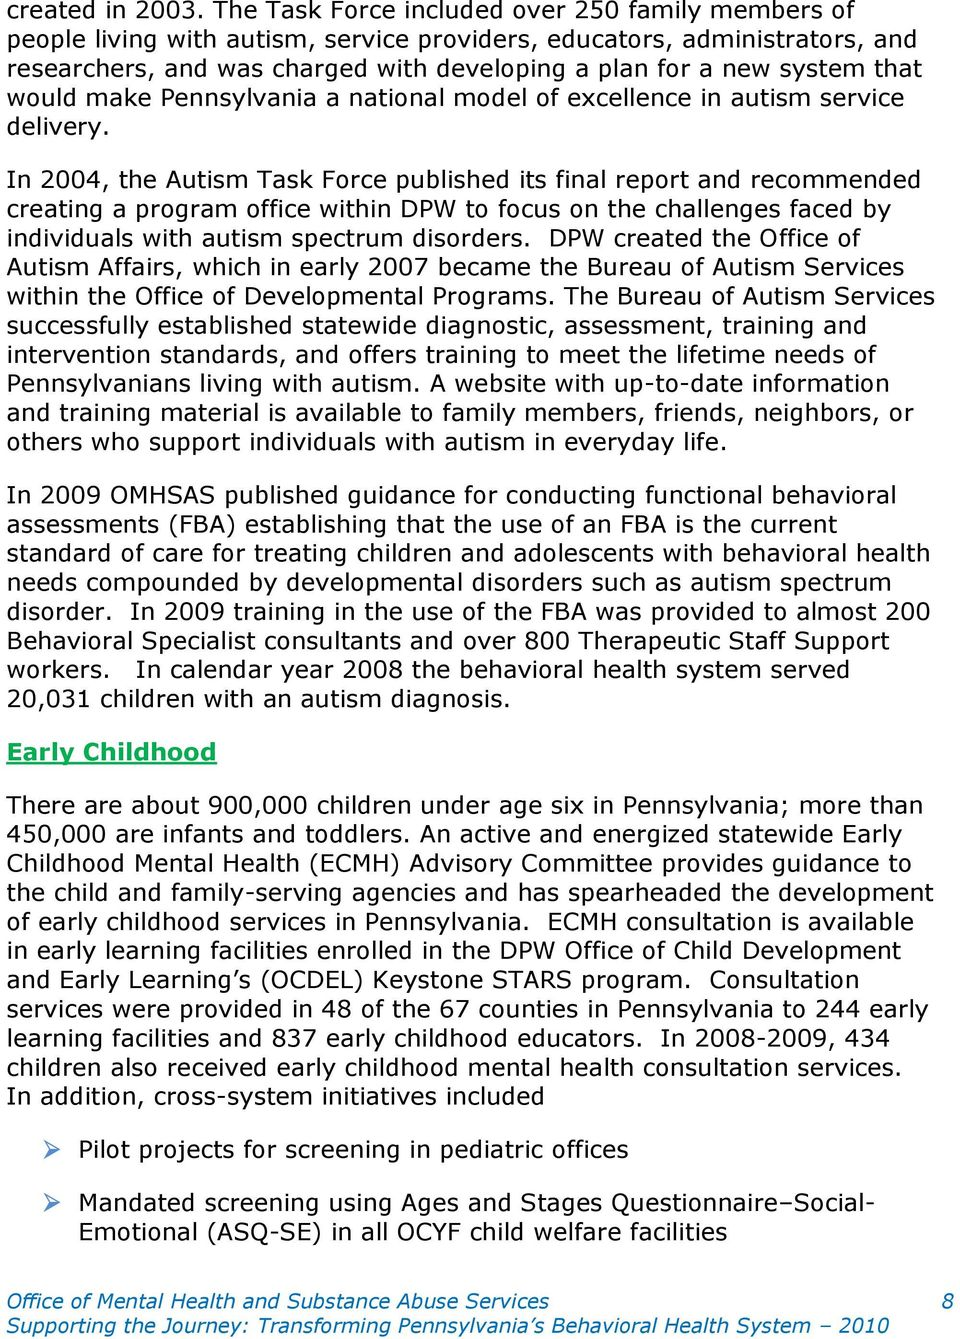 that would make Pennsylvania a national model of excellence in autism service delivery.